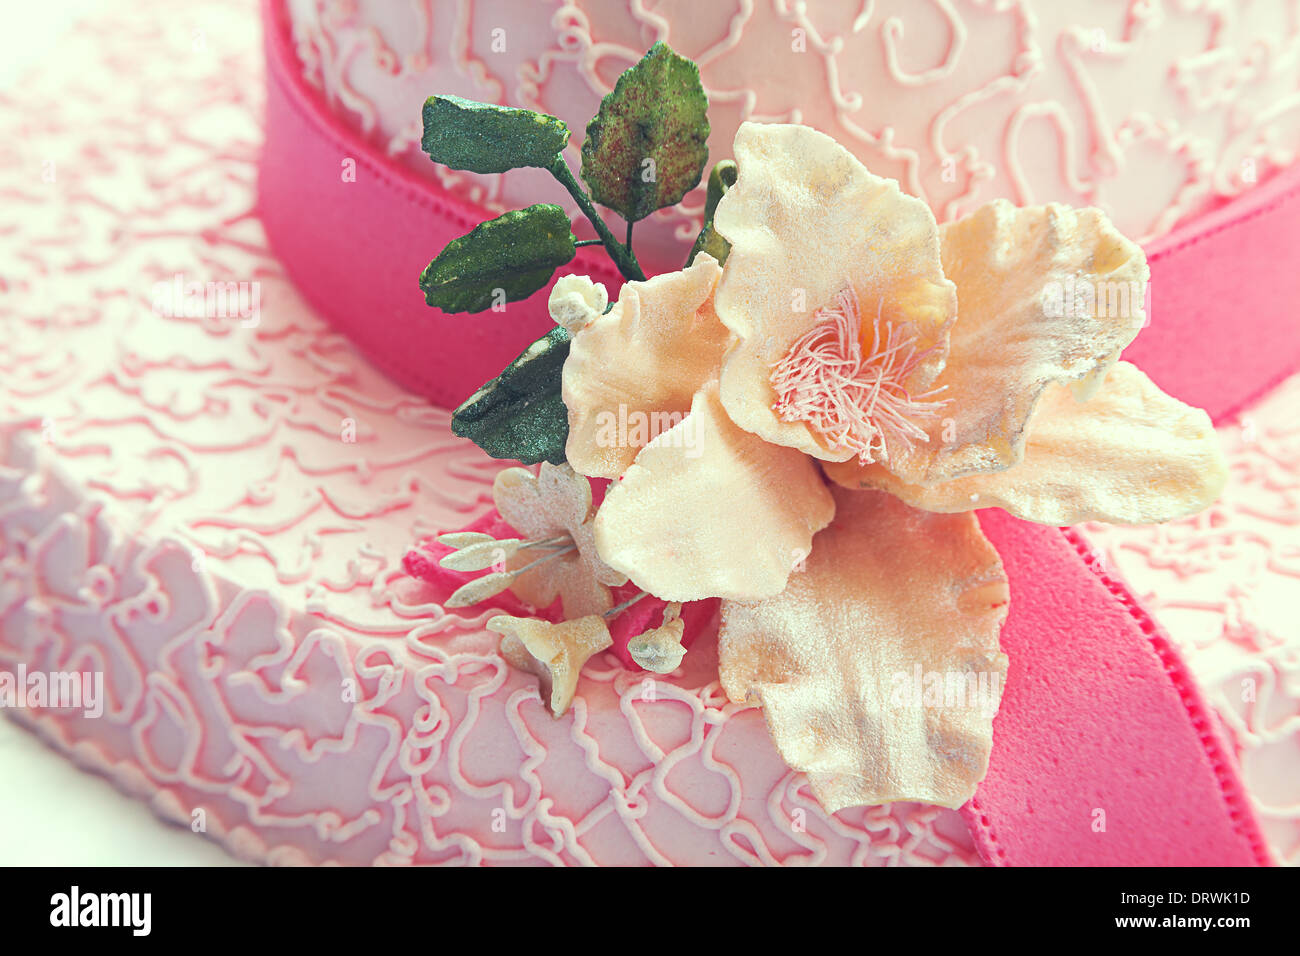 Terrific Birthday Cake Looks Like Hat In Pink Color And Flower Made Of Funny Birthday Cards Online Alyptdamsfinfo